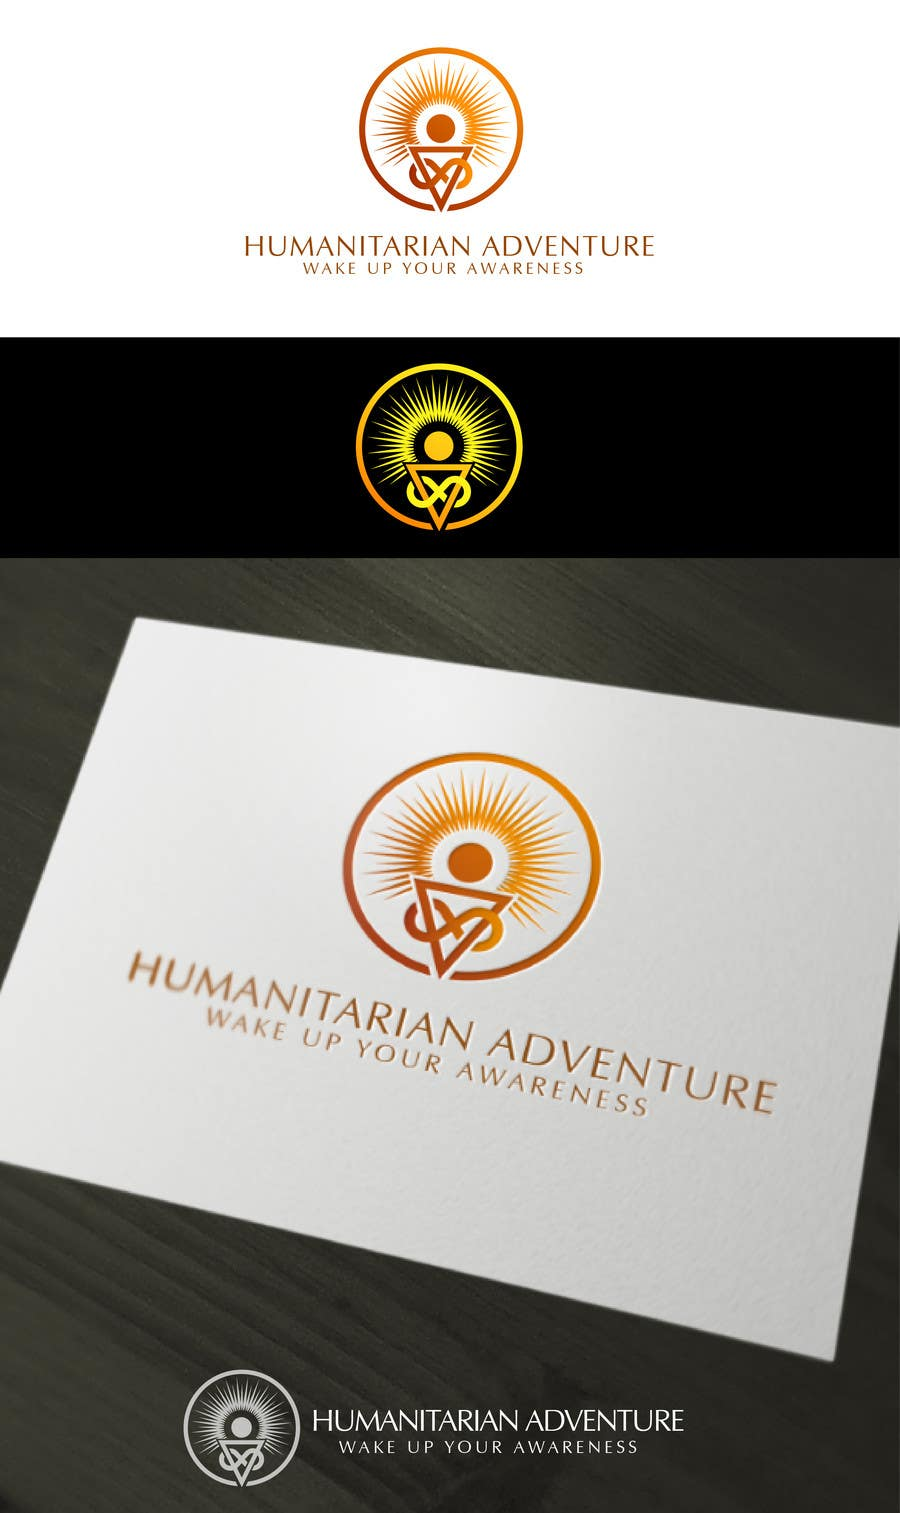 Proposition n°                                        52                                      du concours                                         LOGO representing 'waking up', 'awareness', 'knowledge' for humanitarian adventure